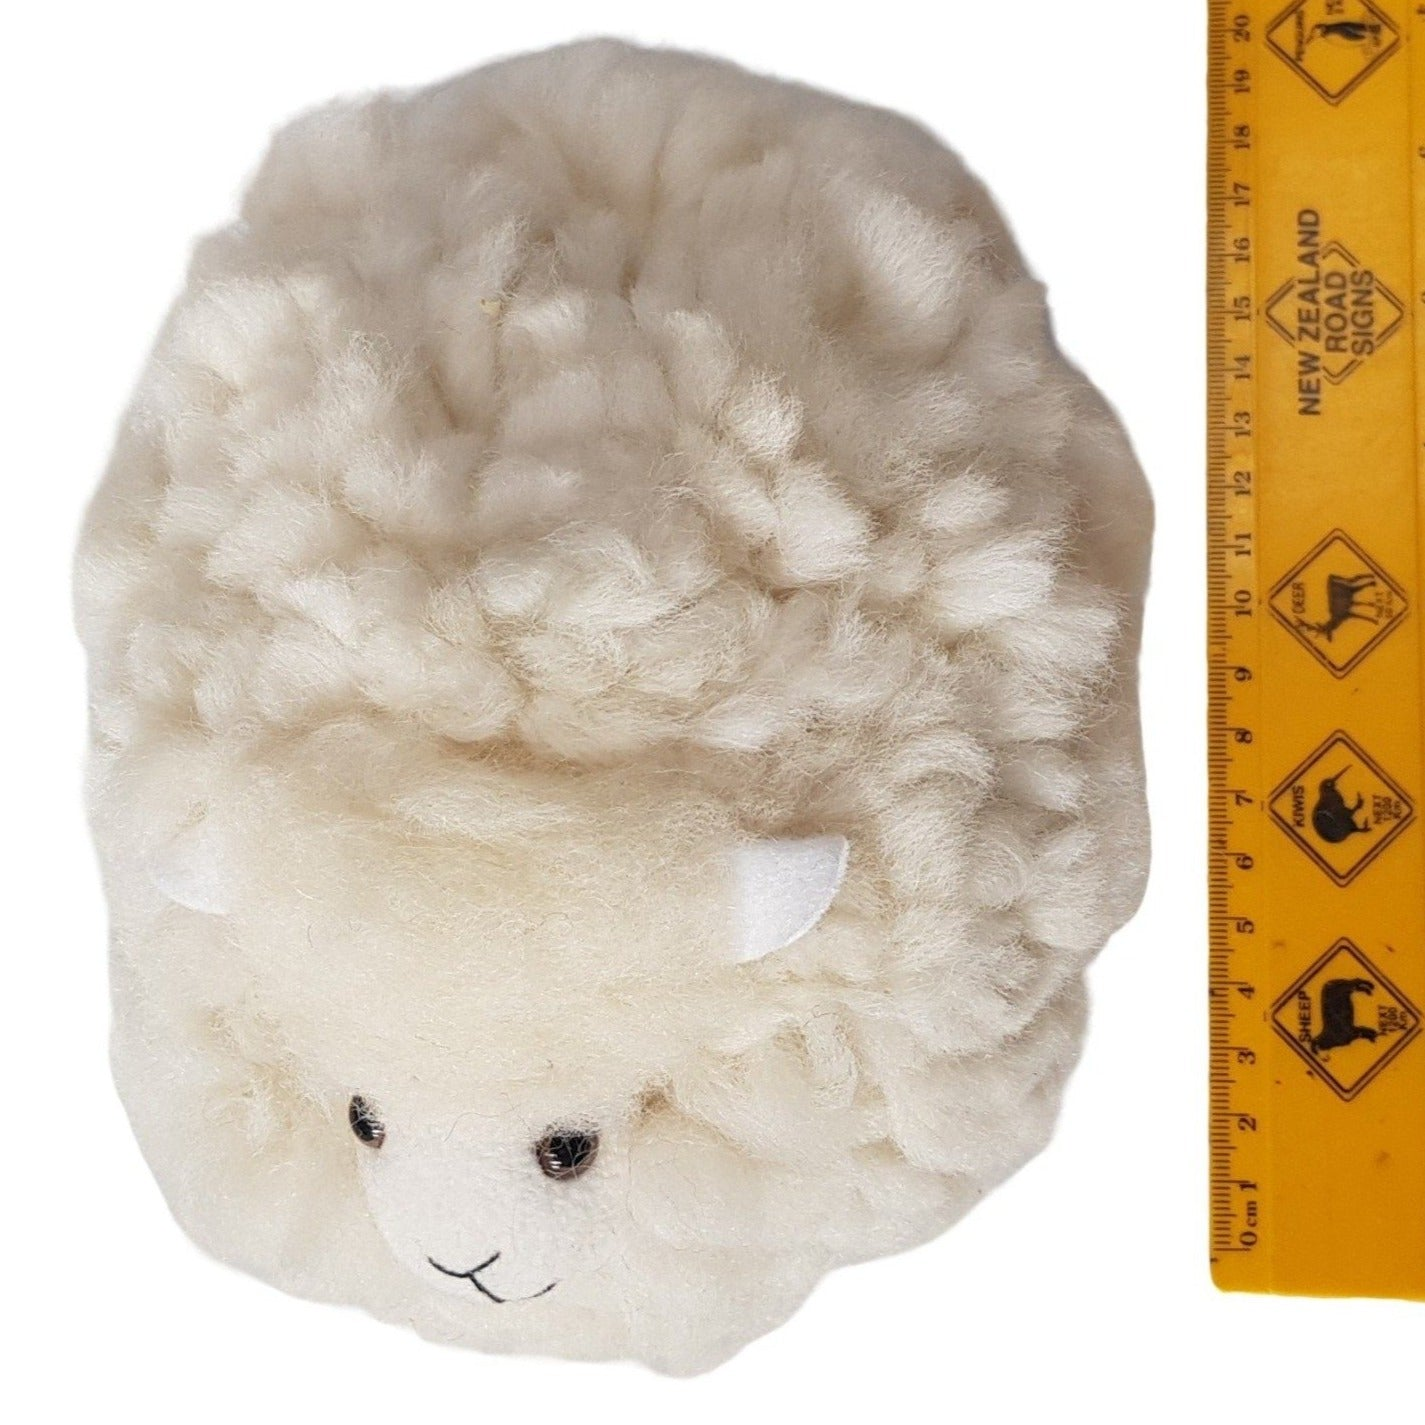 new zealand wool toy sheep